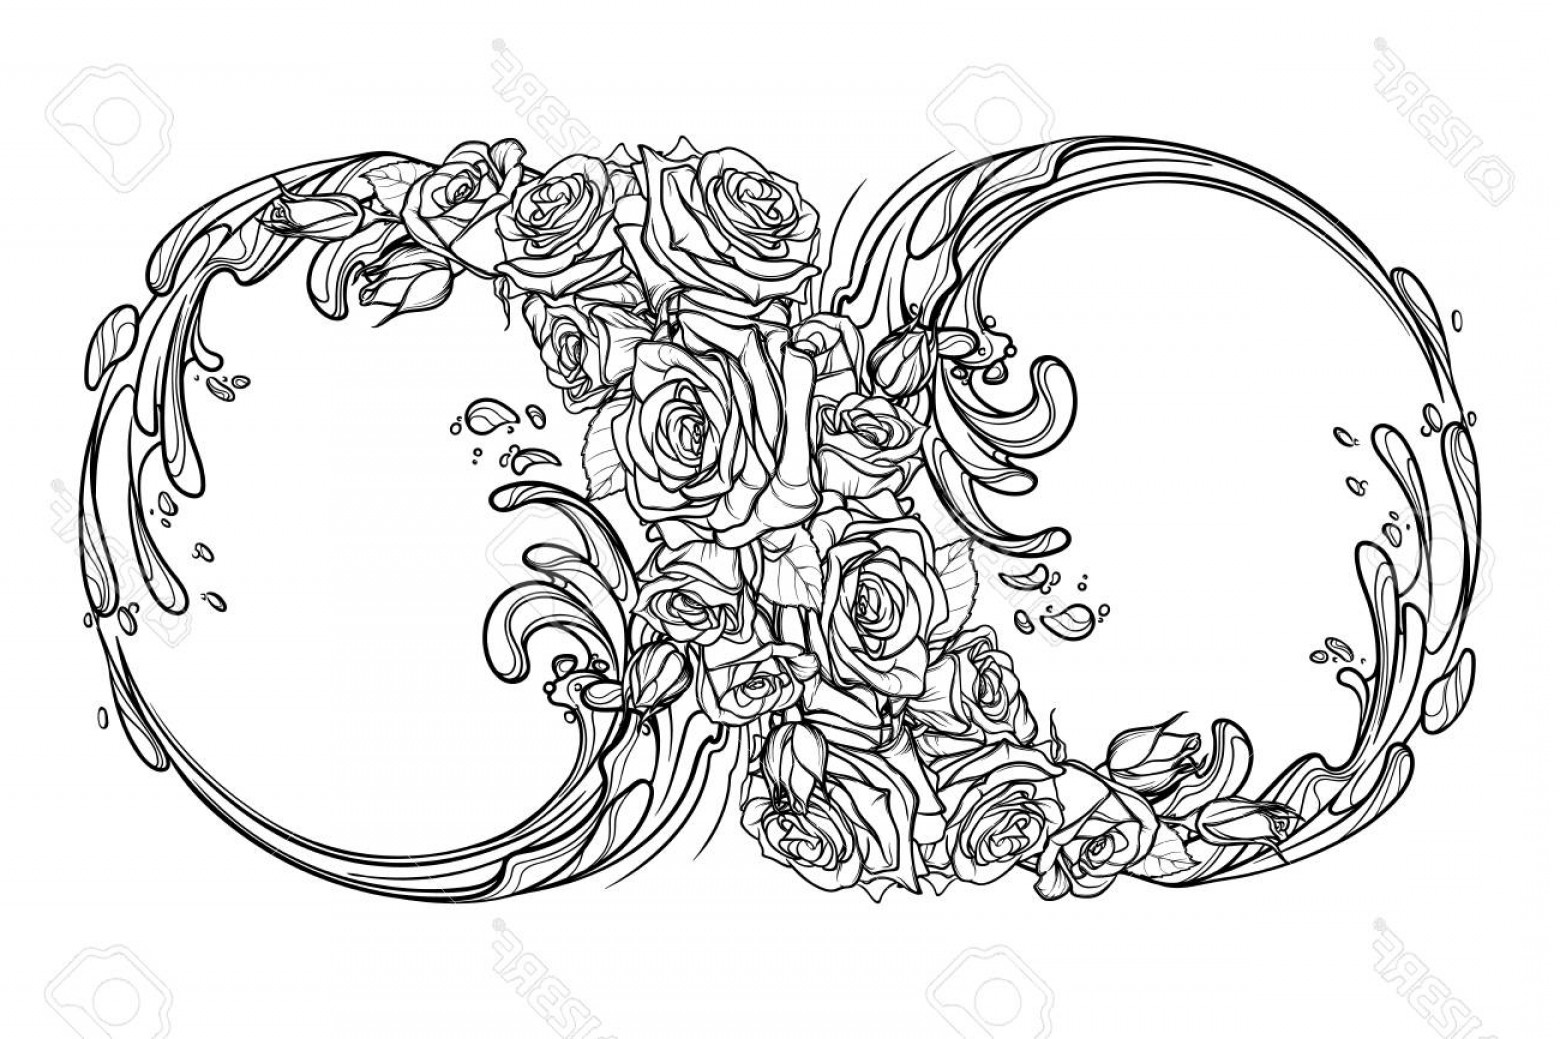 Photostock Vector Sign Of The Eternity Or Infinity Artistic